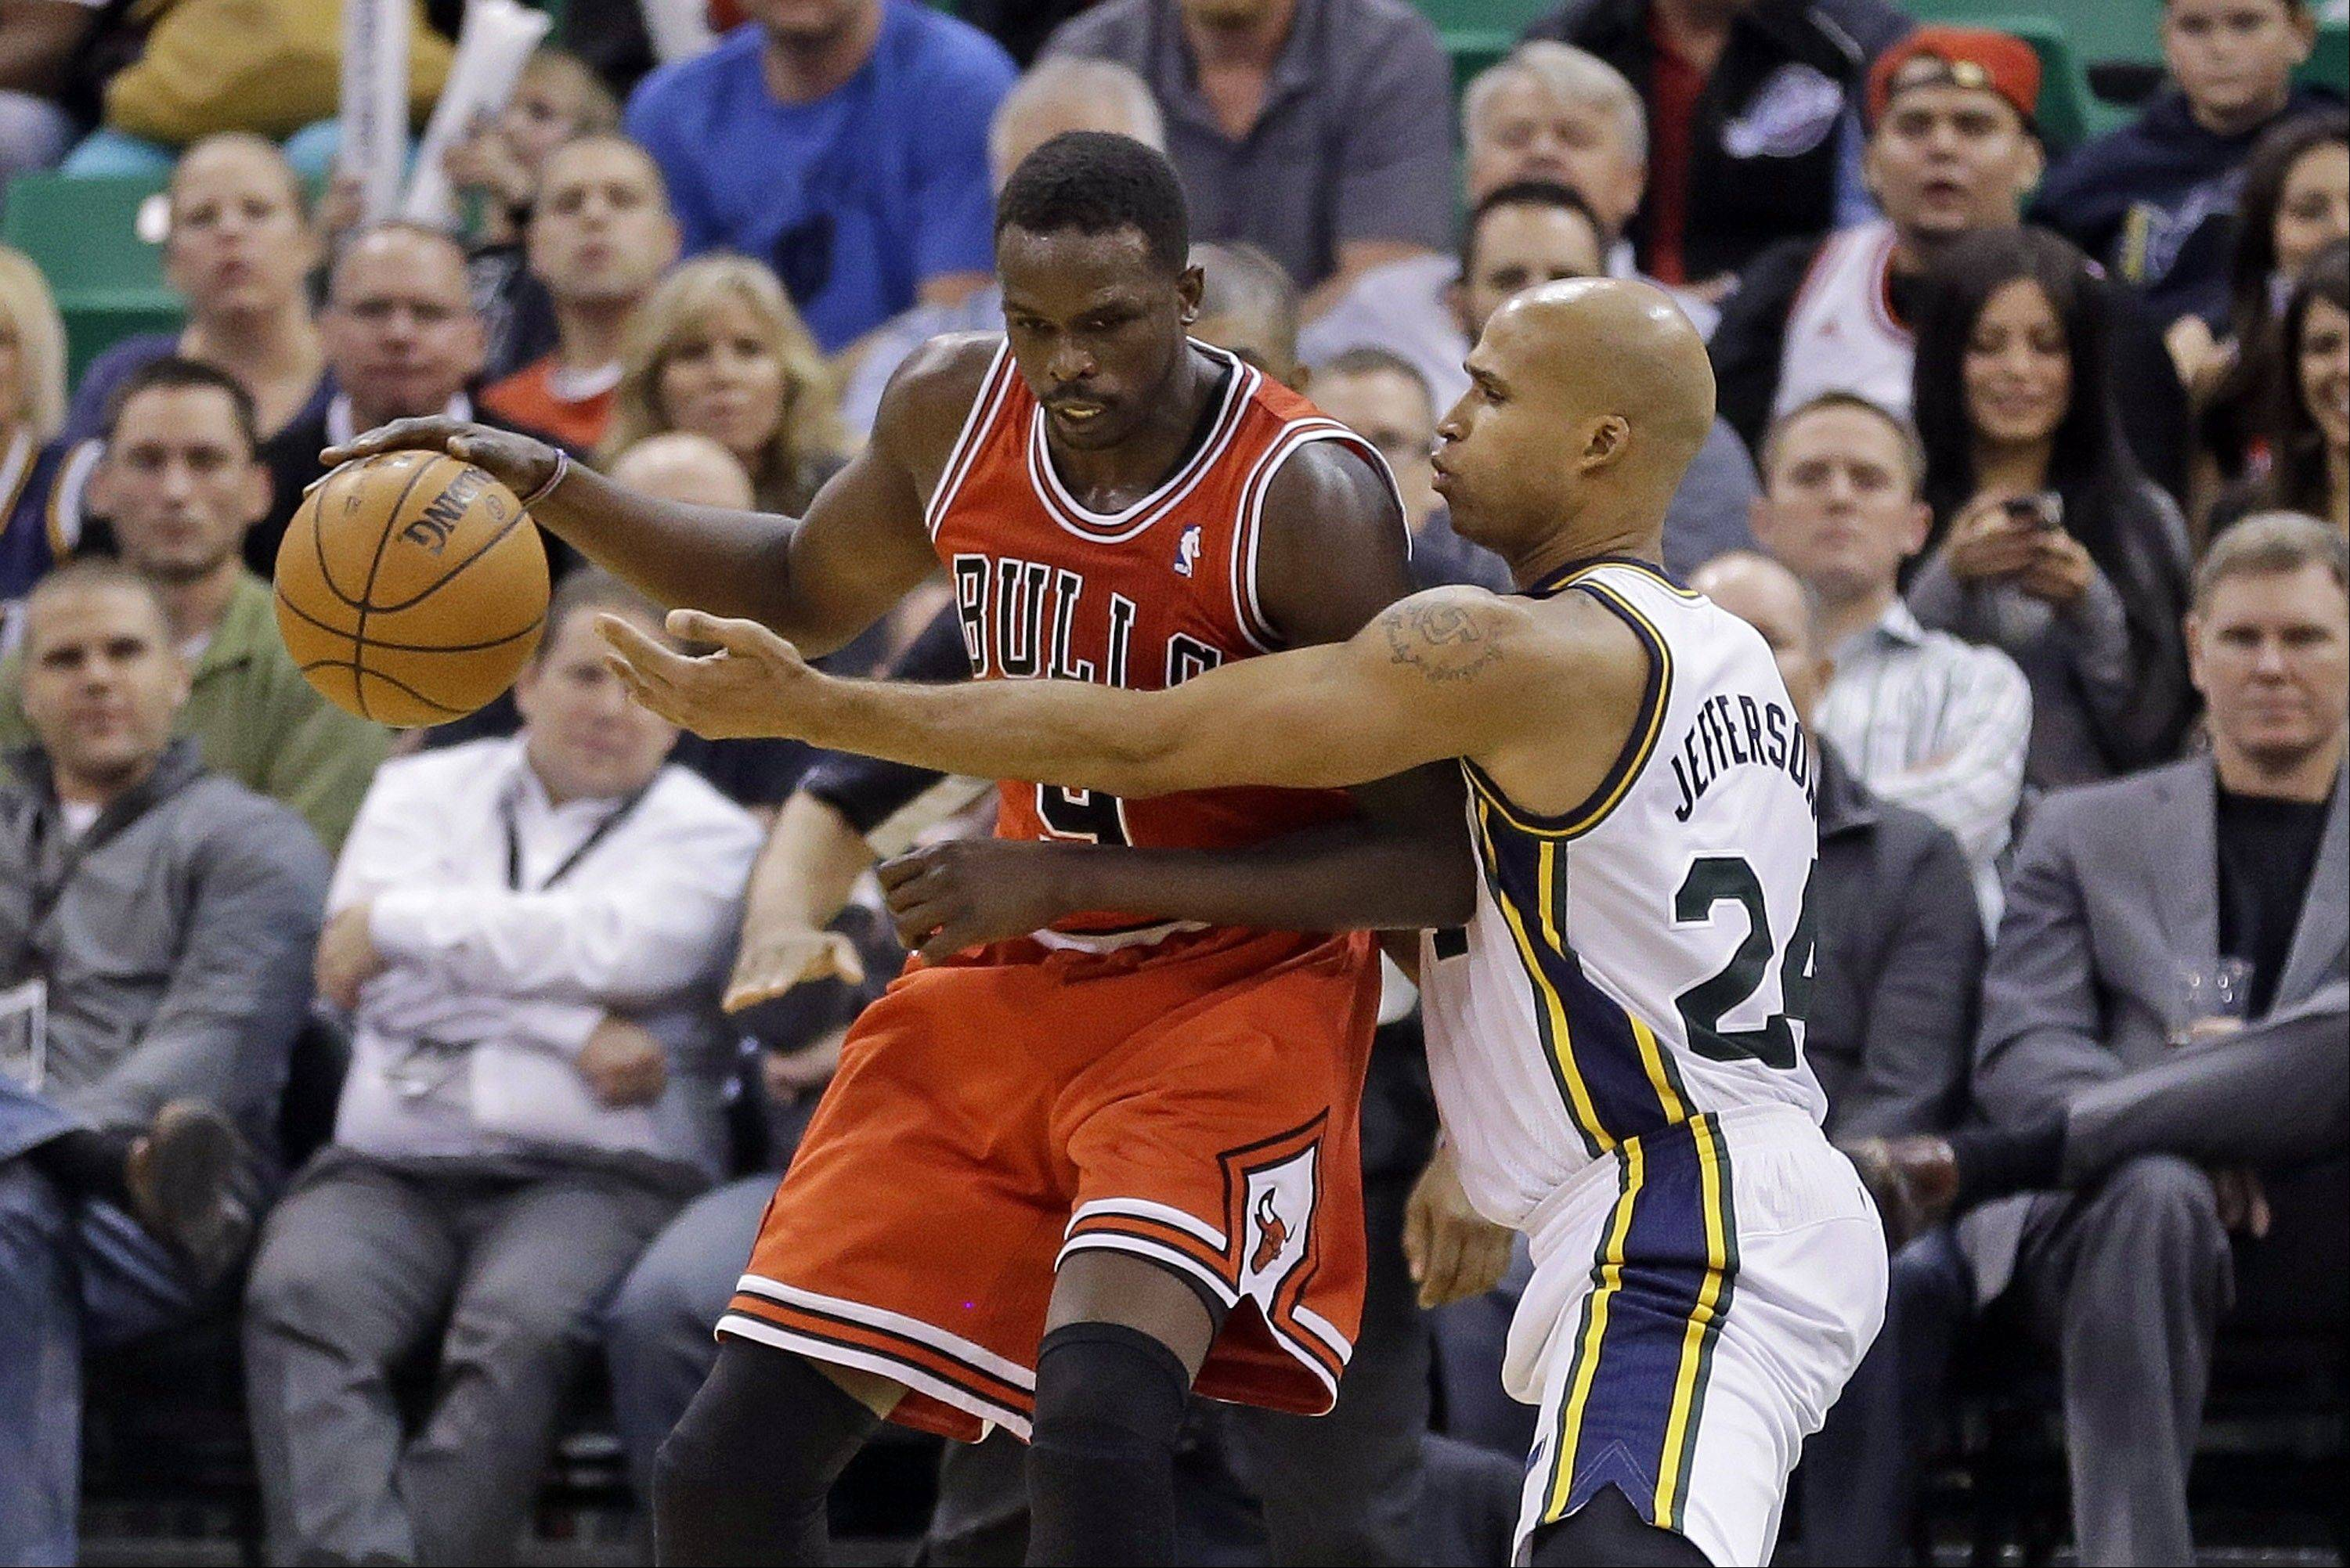 Luol Deng's recent strong play makes it even less likely that he will be with the Bulls beyond this season.